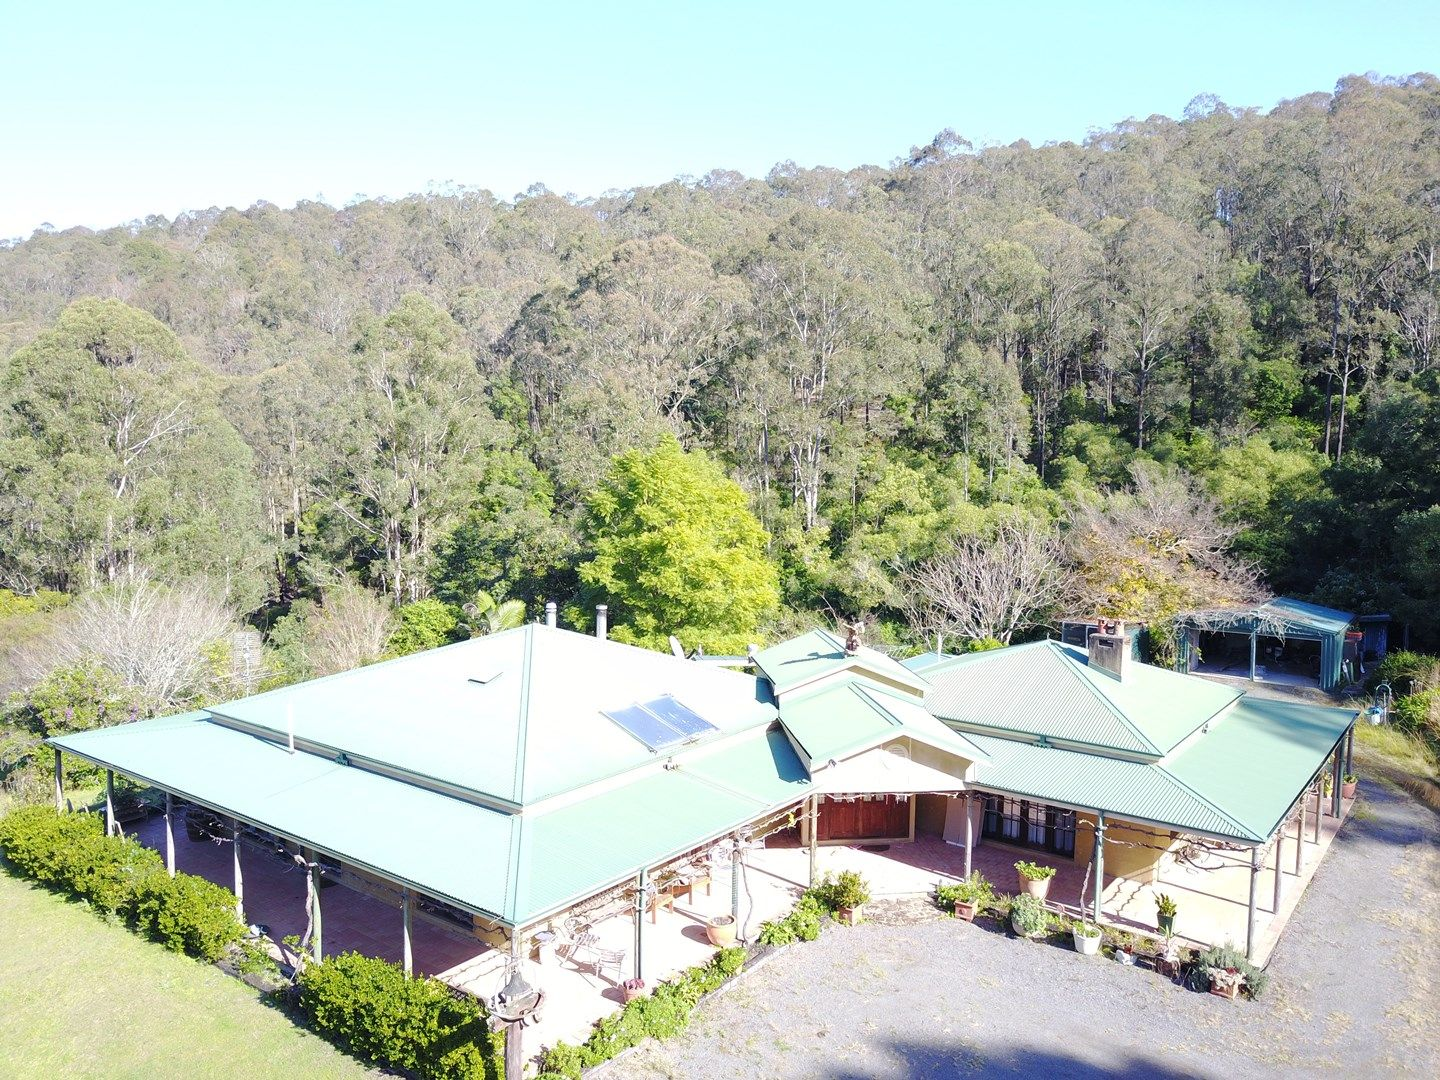 710 Black Camp Road, CAMBRA Via, Dungog NSW 2420, Image 1